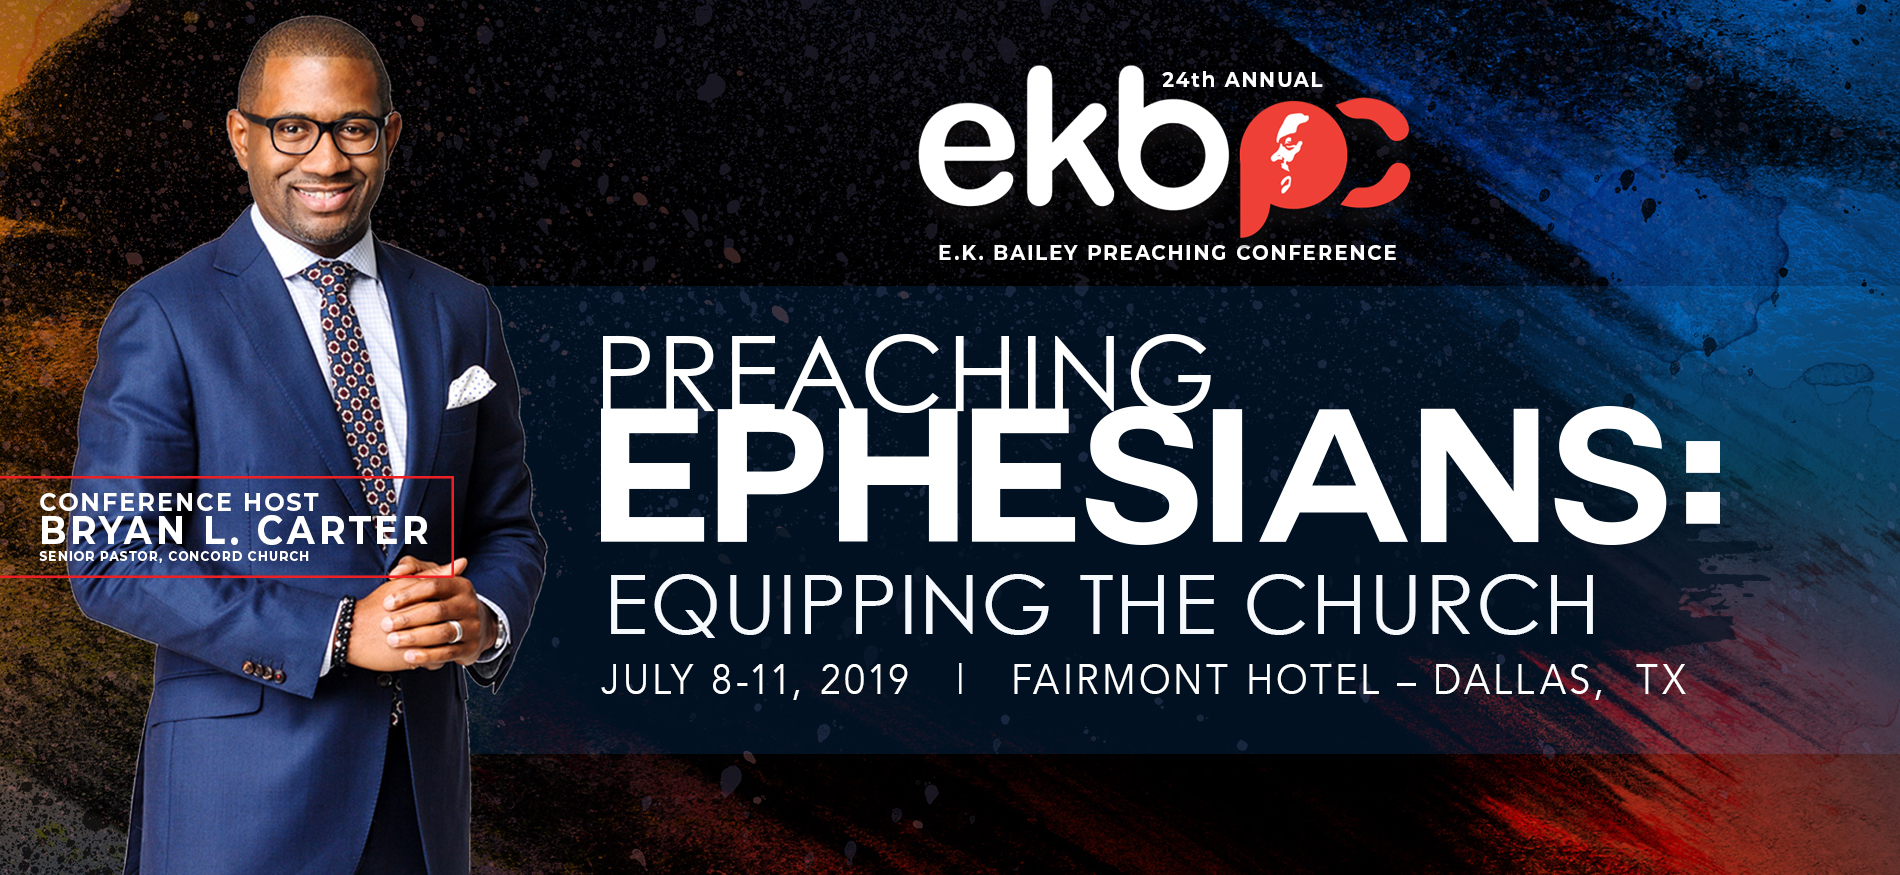 E.K. Bailey Preaching & Ministry Mates Conferences 2019